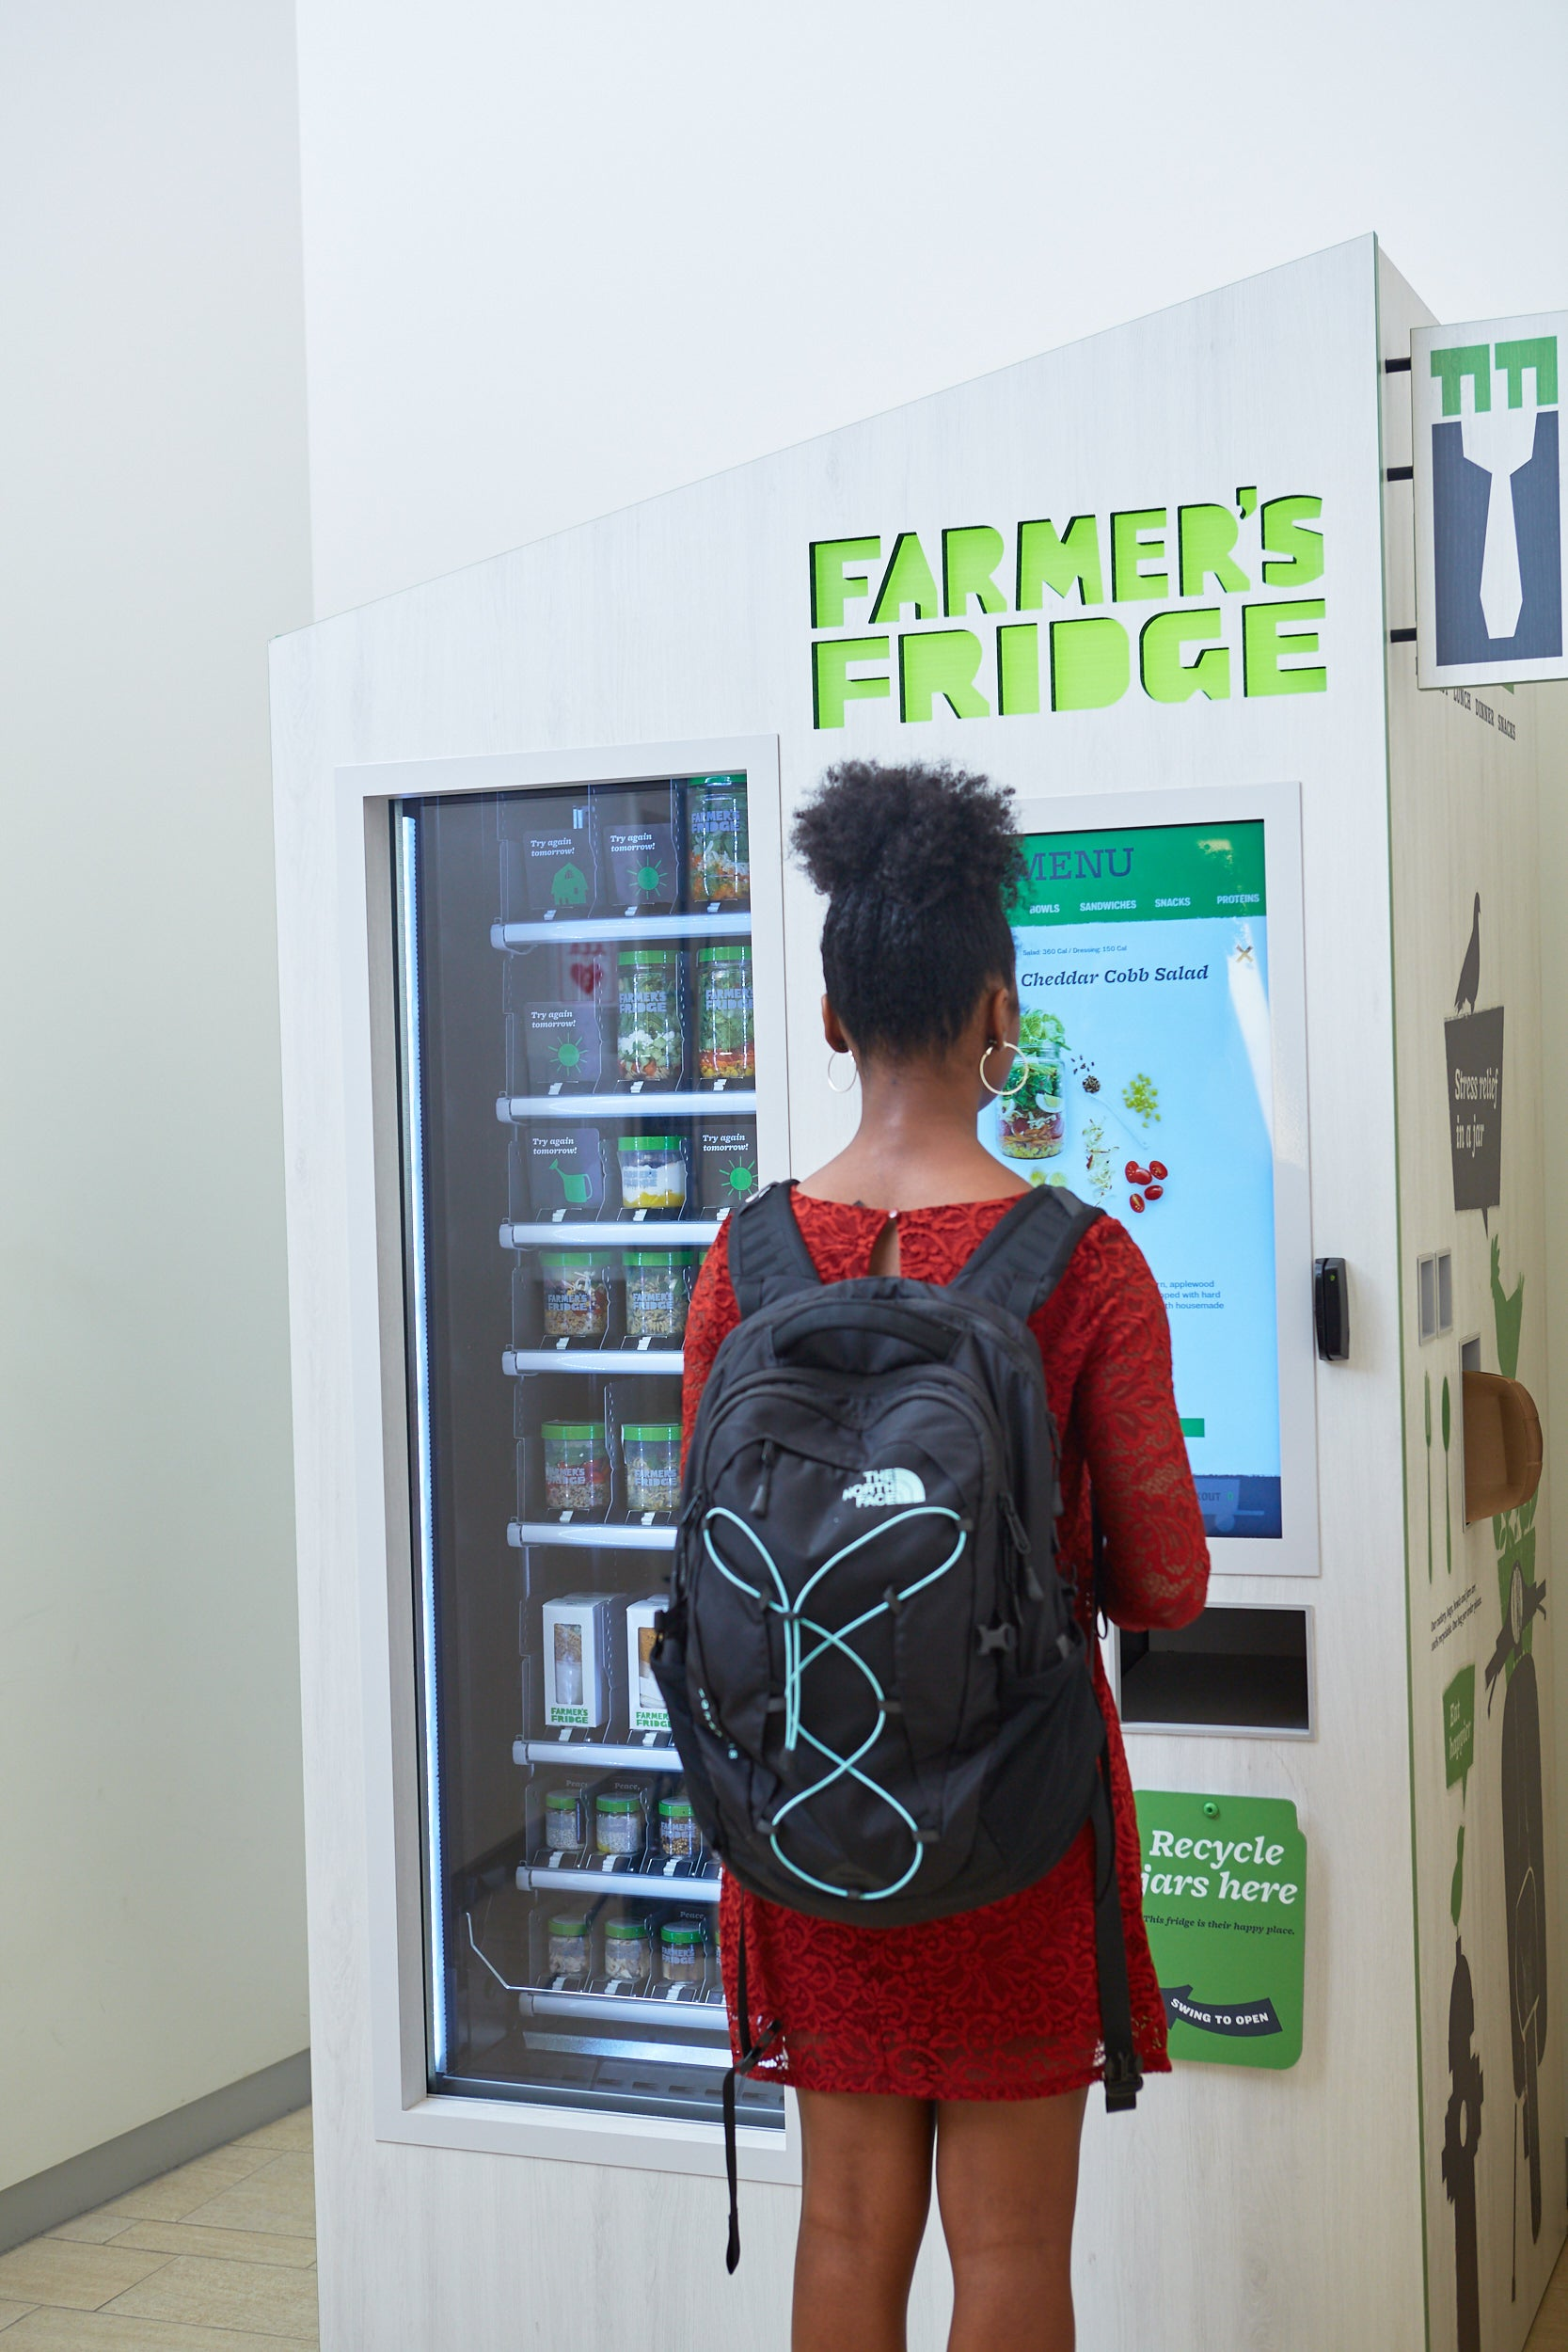 Student wearing black North Face backpack is placing an order at a Farmer's Fridge vending kiosk.